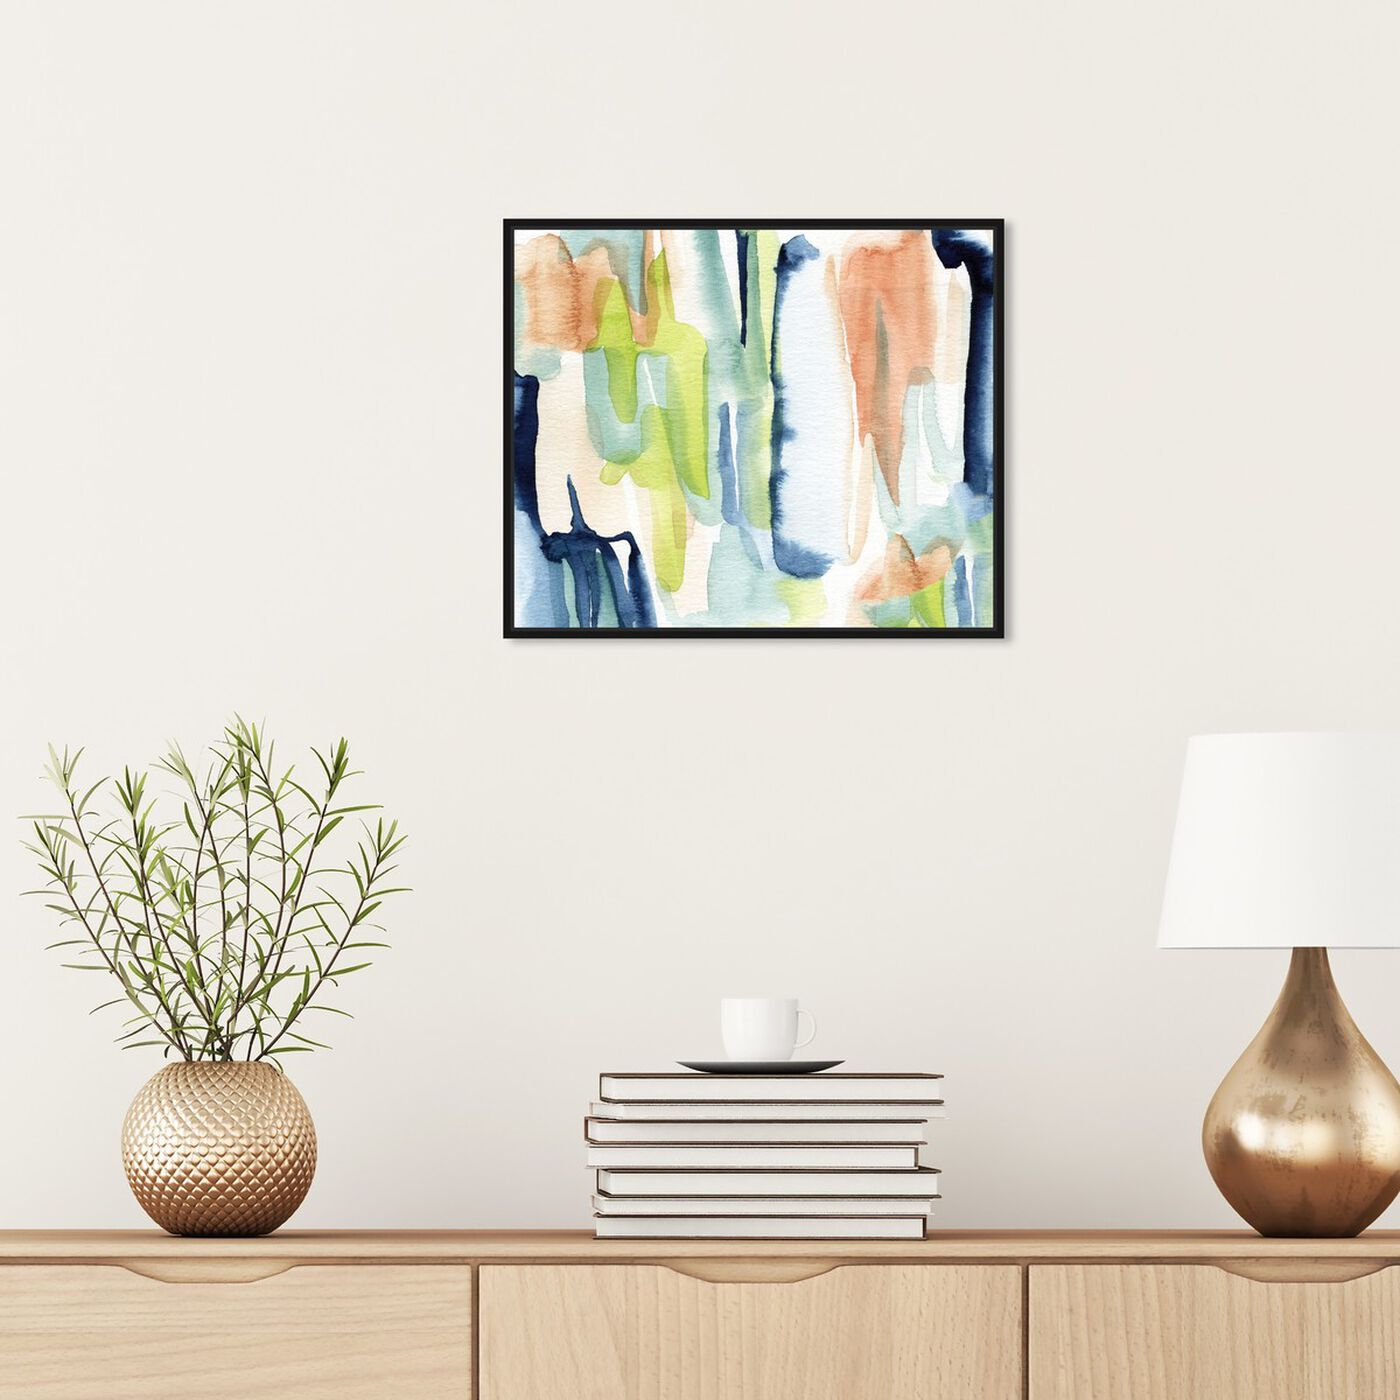 Hanging view of Seaglass Eyes featuring abstract and watercolor art.